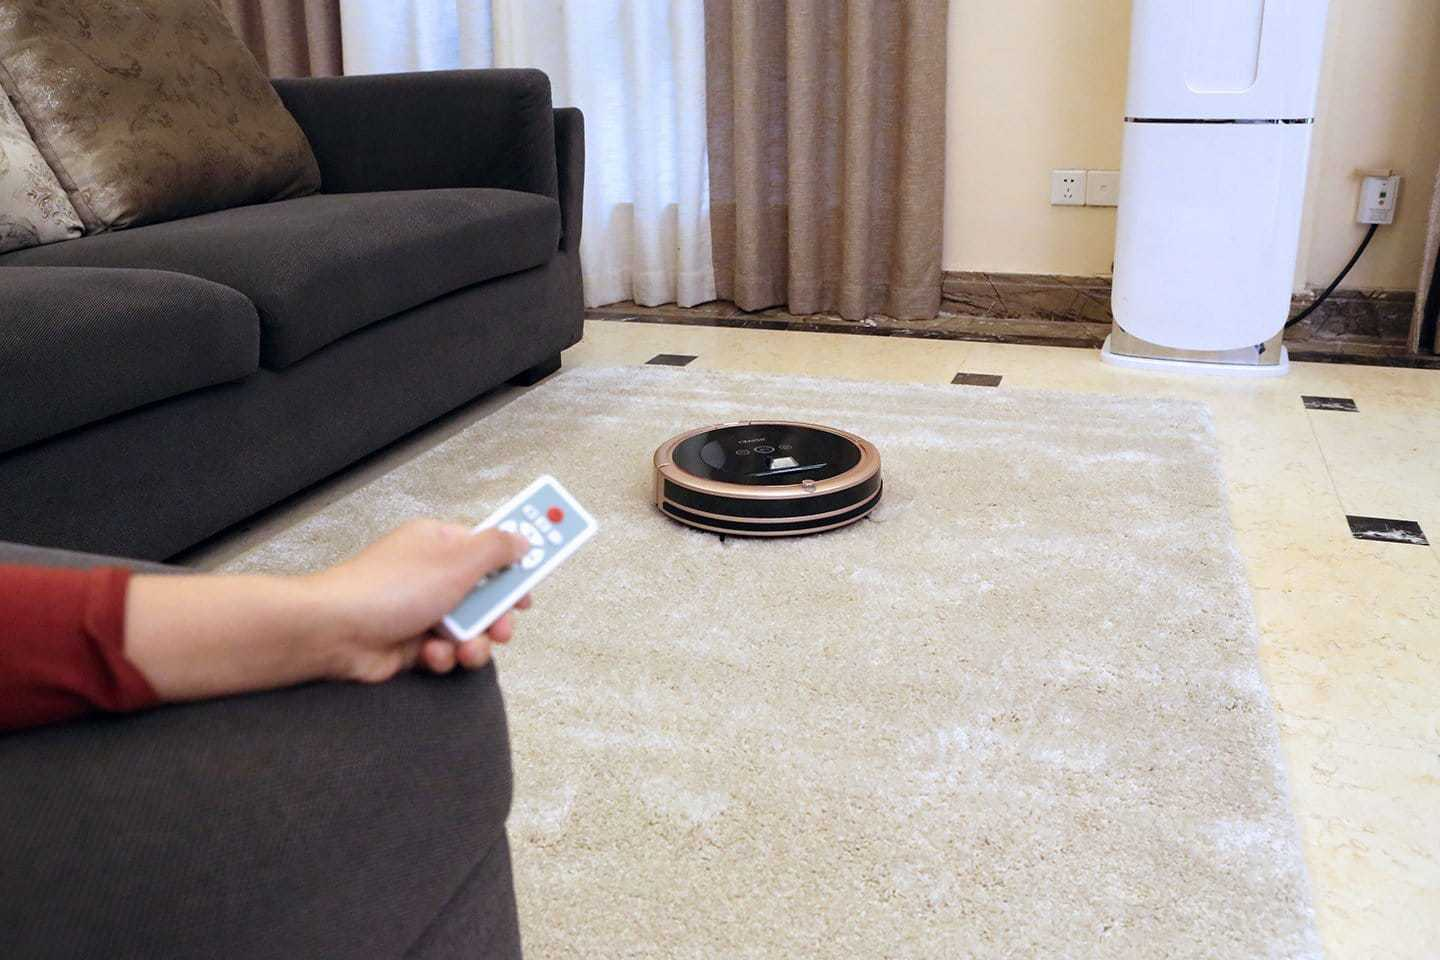 Introducing The Next Generation i5 Robot Vacuum Cleaner Expected To Hit IndieGoGo Soon - 1